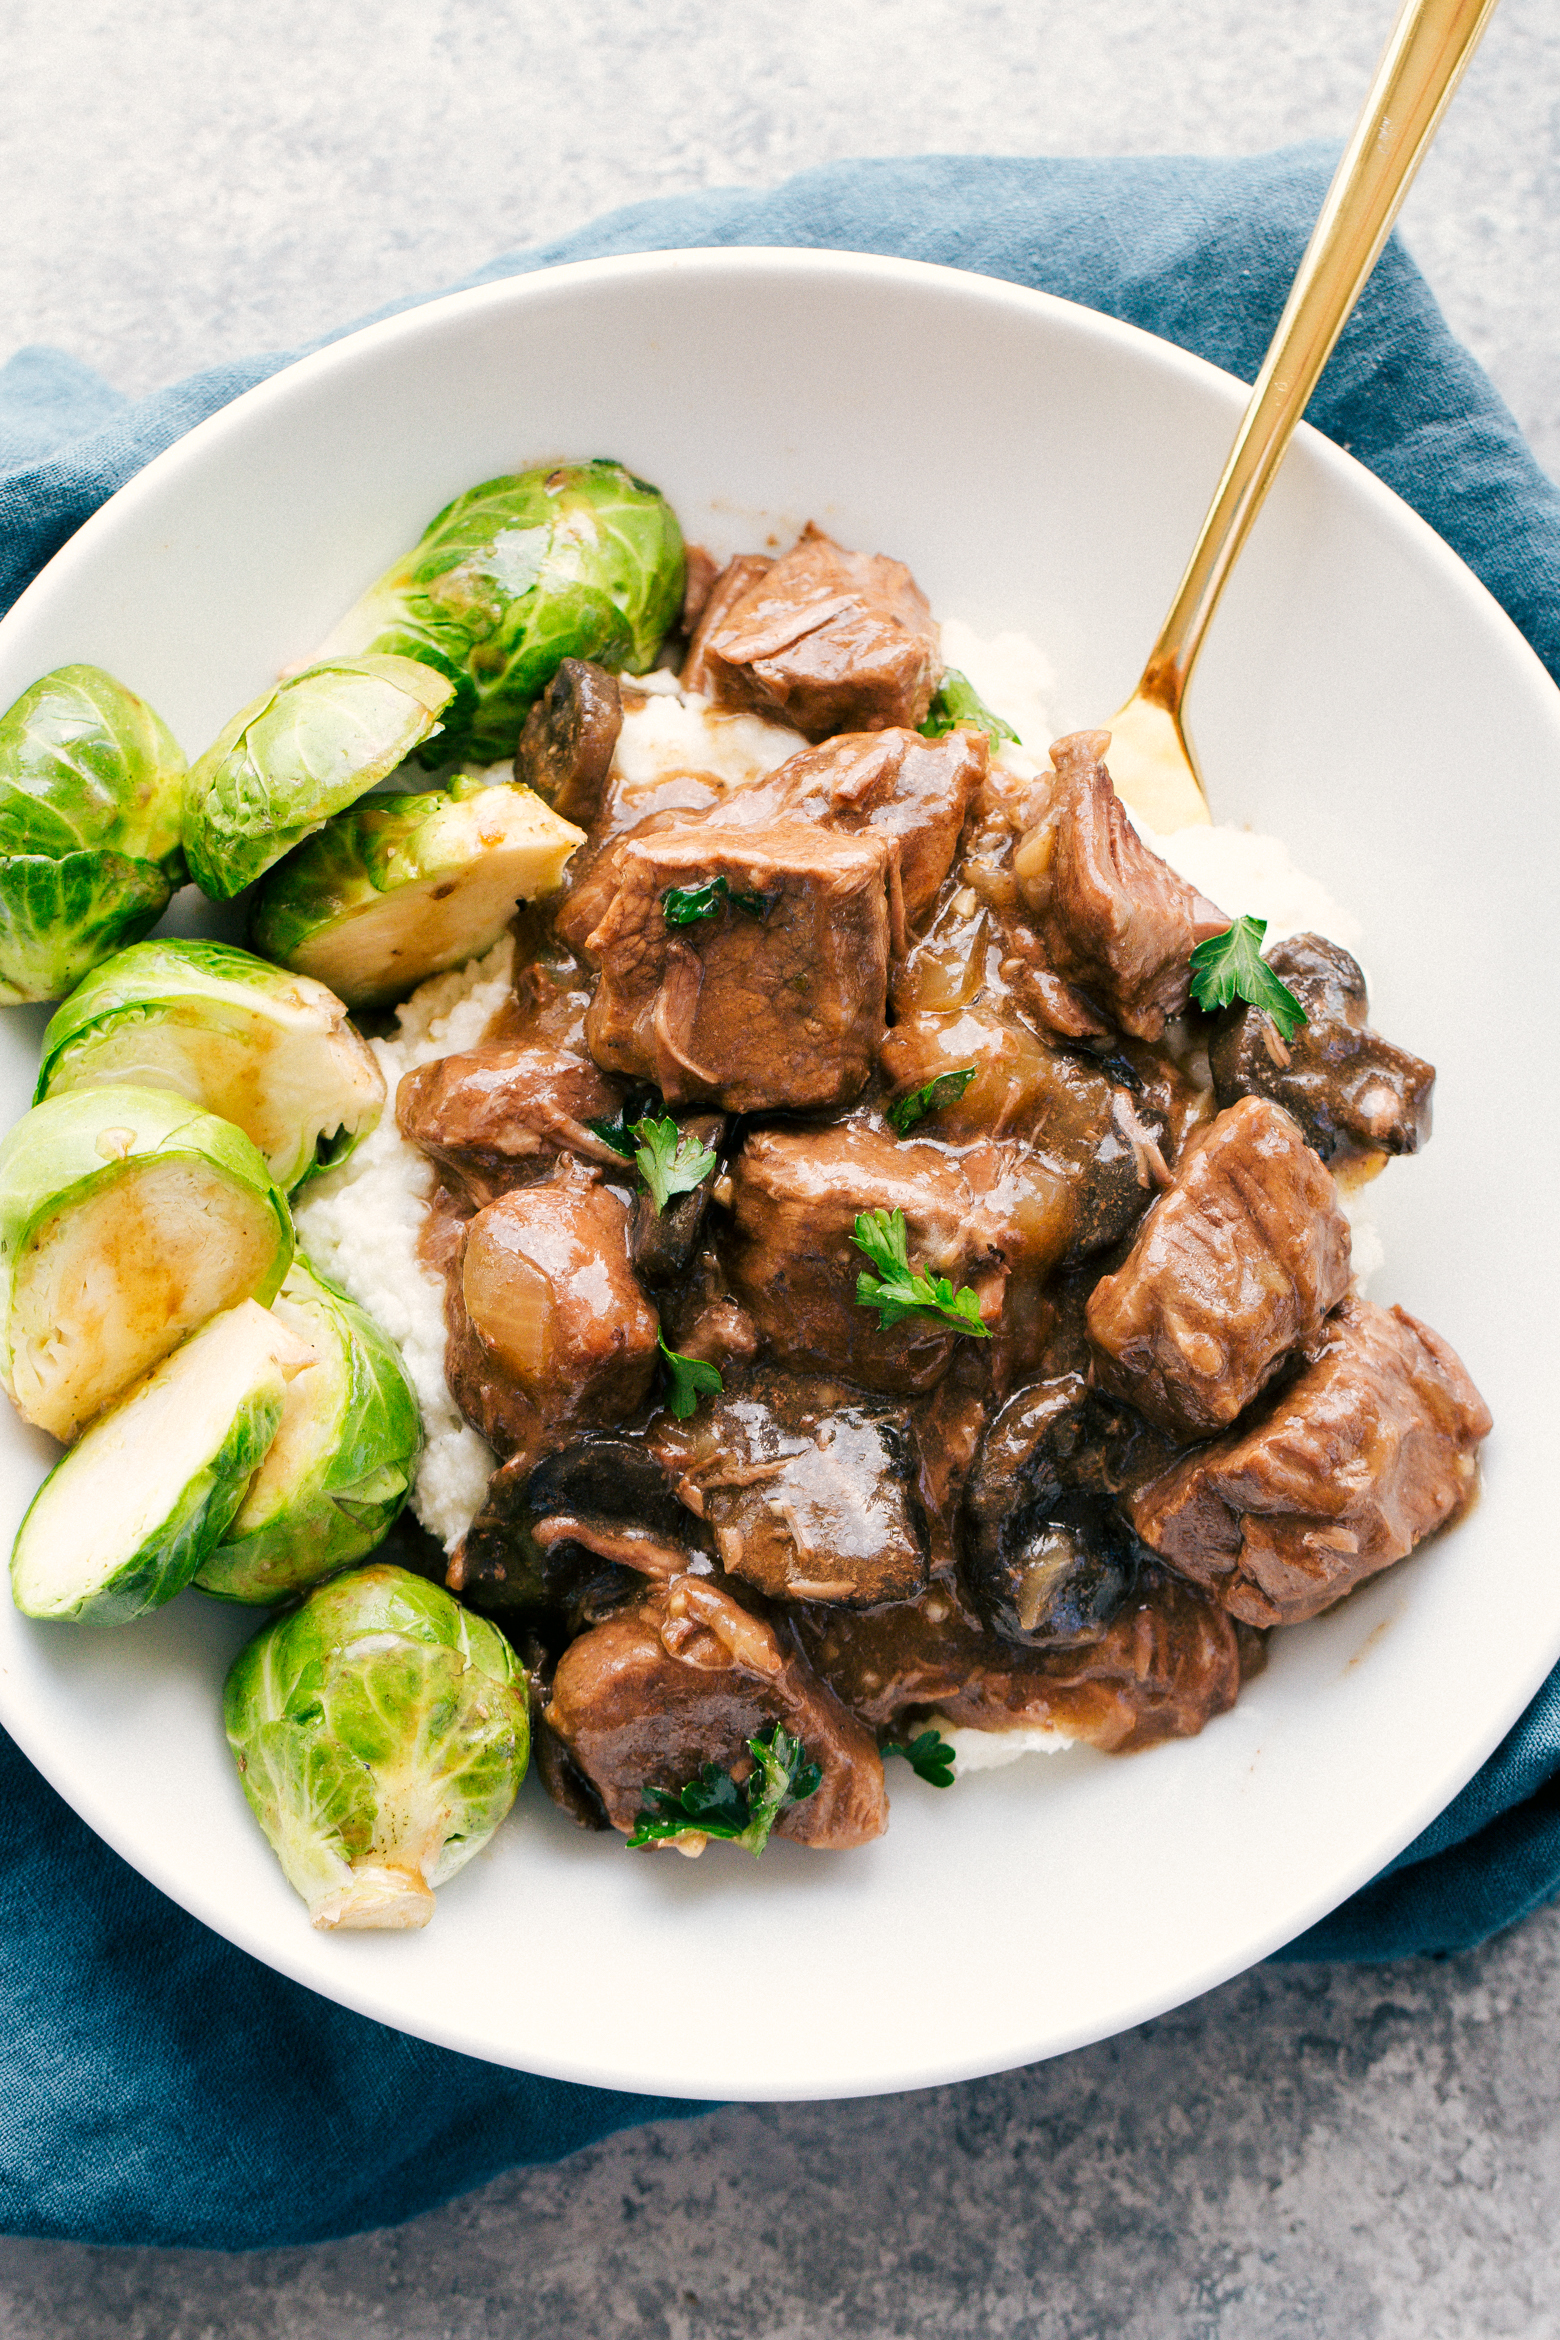 Slow cooker beef tips and gravy served over rice along side steamed brussels sprouts in a white bowl, by The Food Cafe.